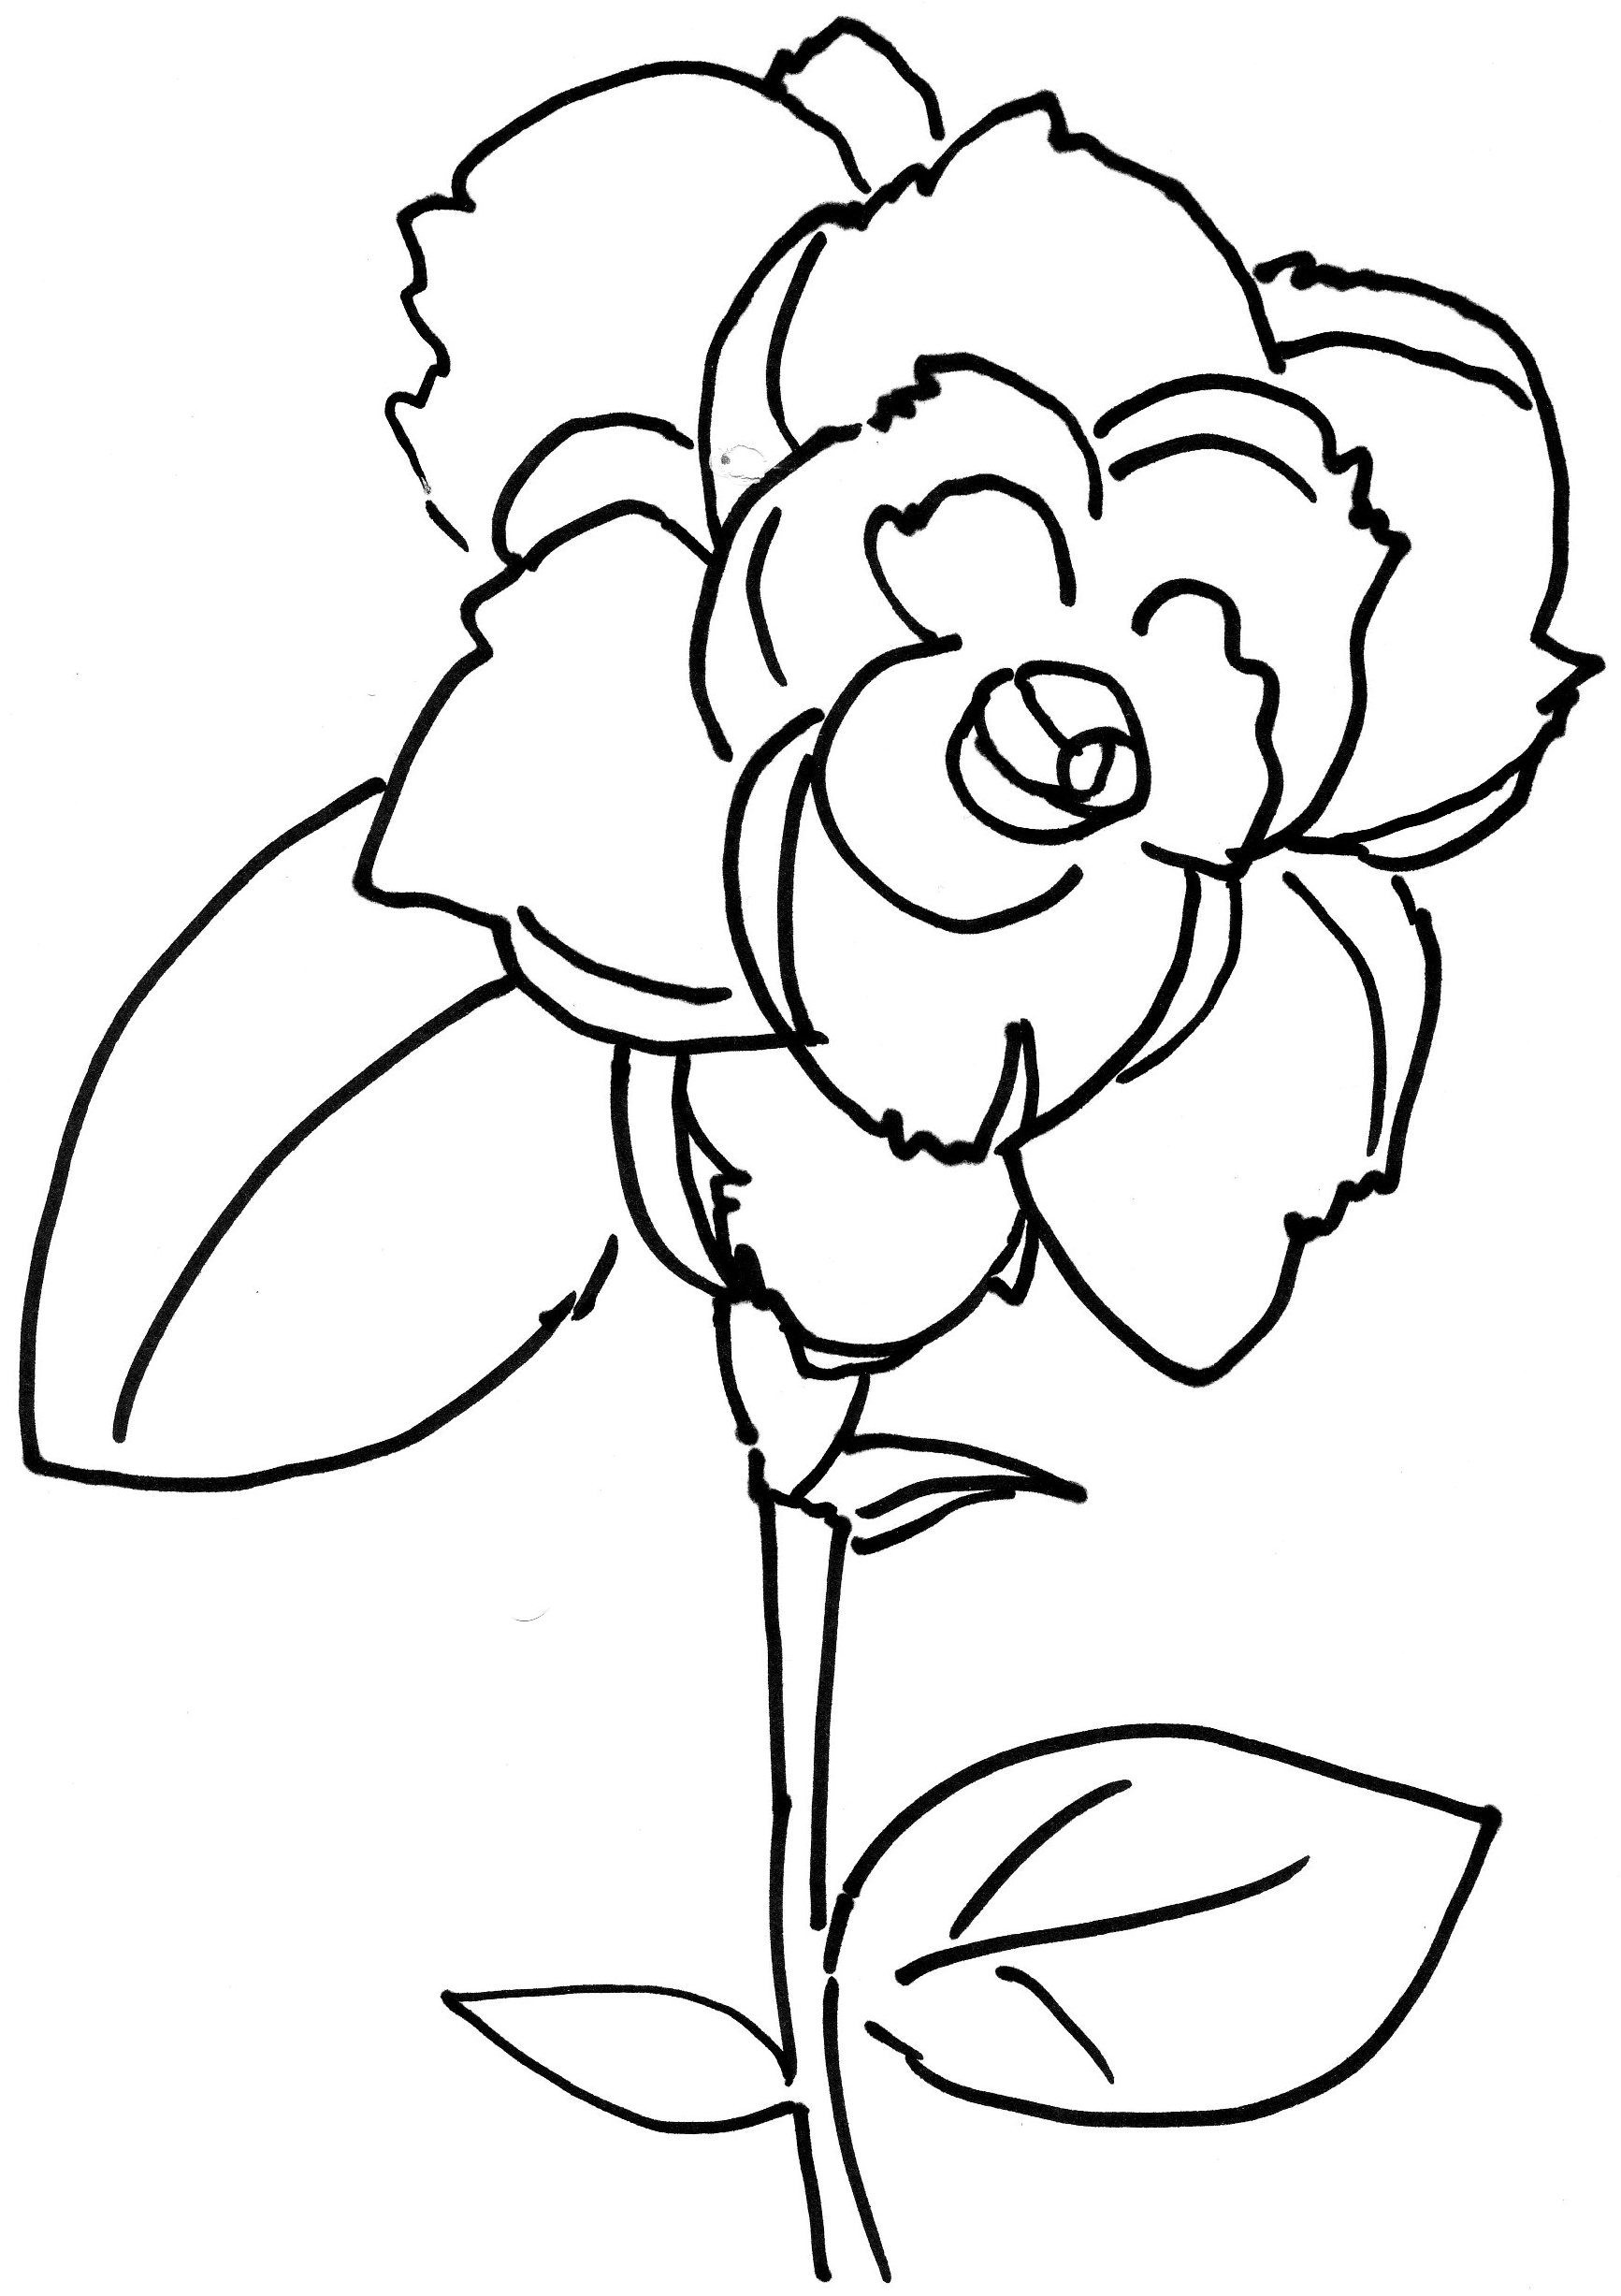 1733x2454 Rose Bud Flower Coloring Pages For Kids Unique Roses